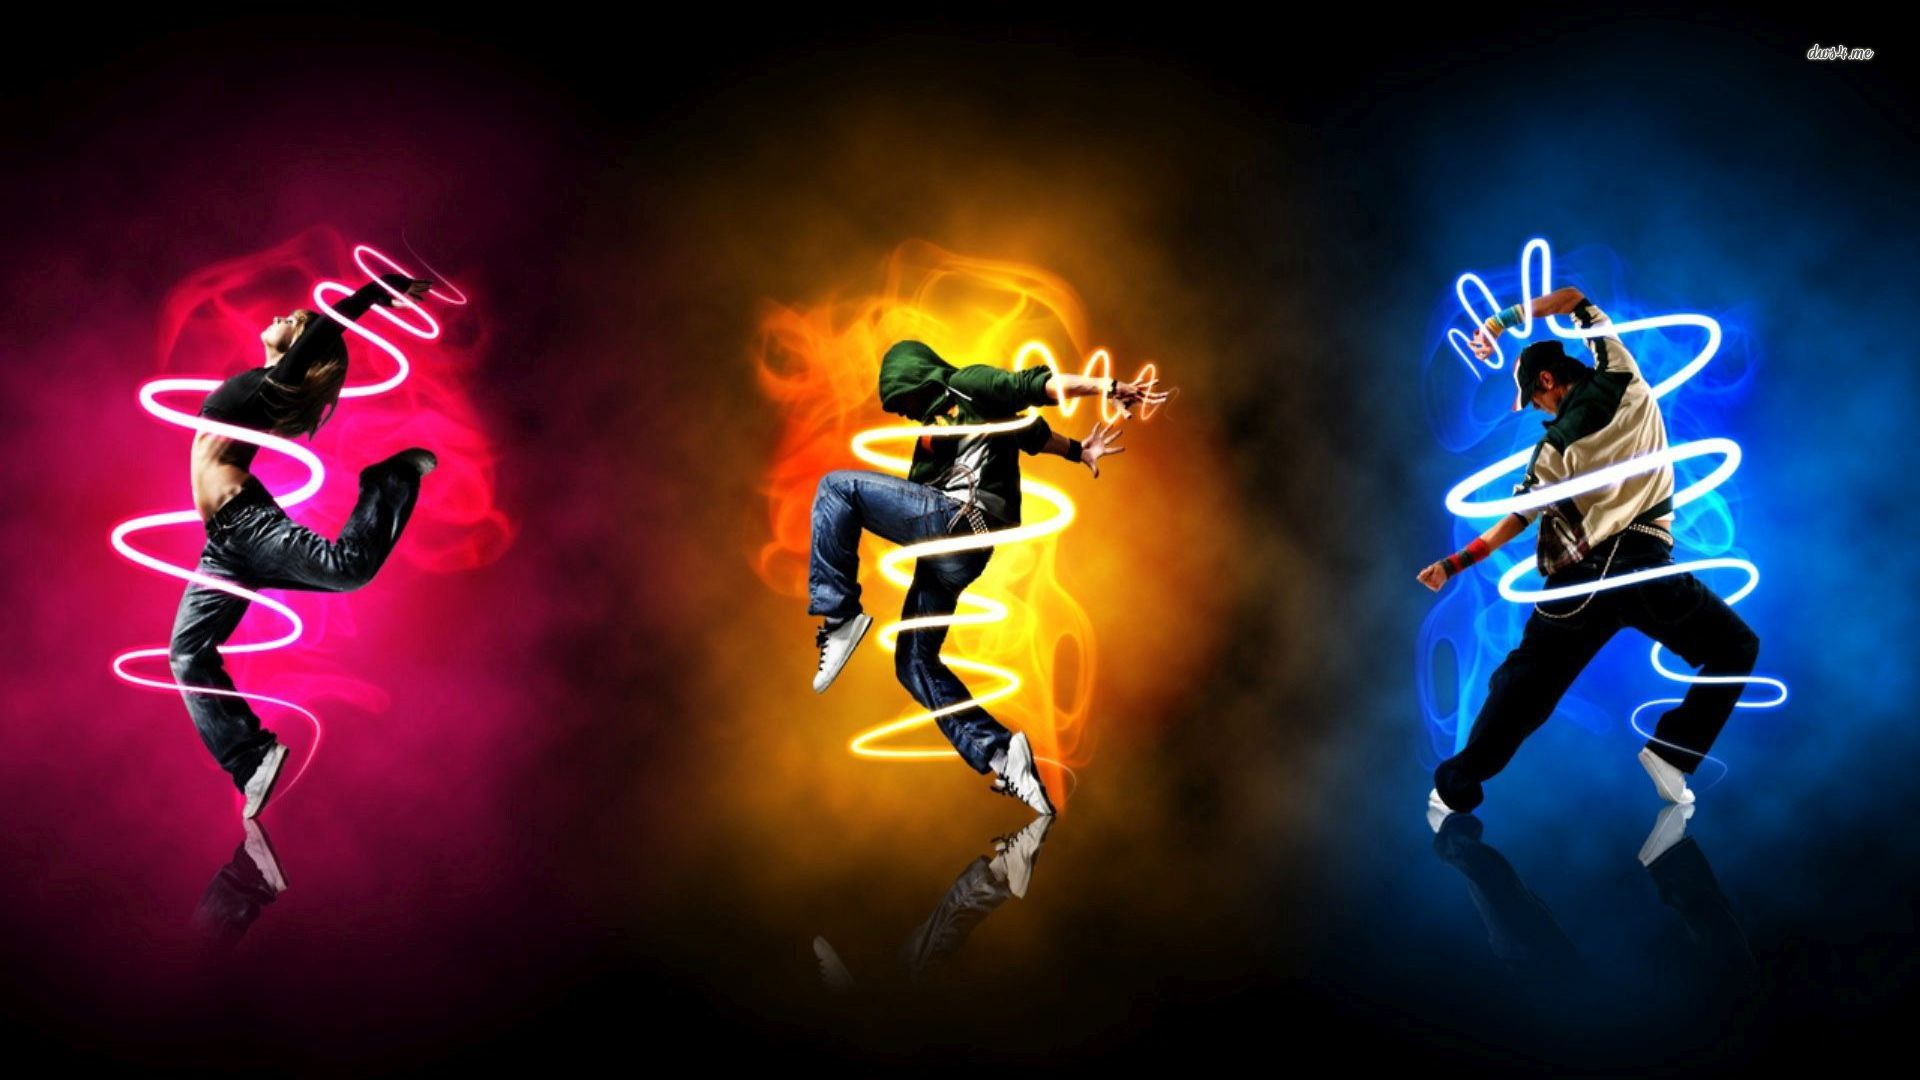 Dance Wallpapers, Dance Wallpapers Free Download - 40+ New Photos